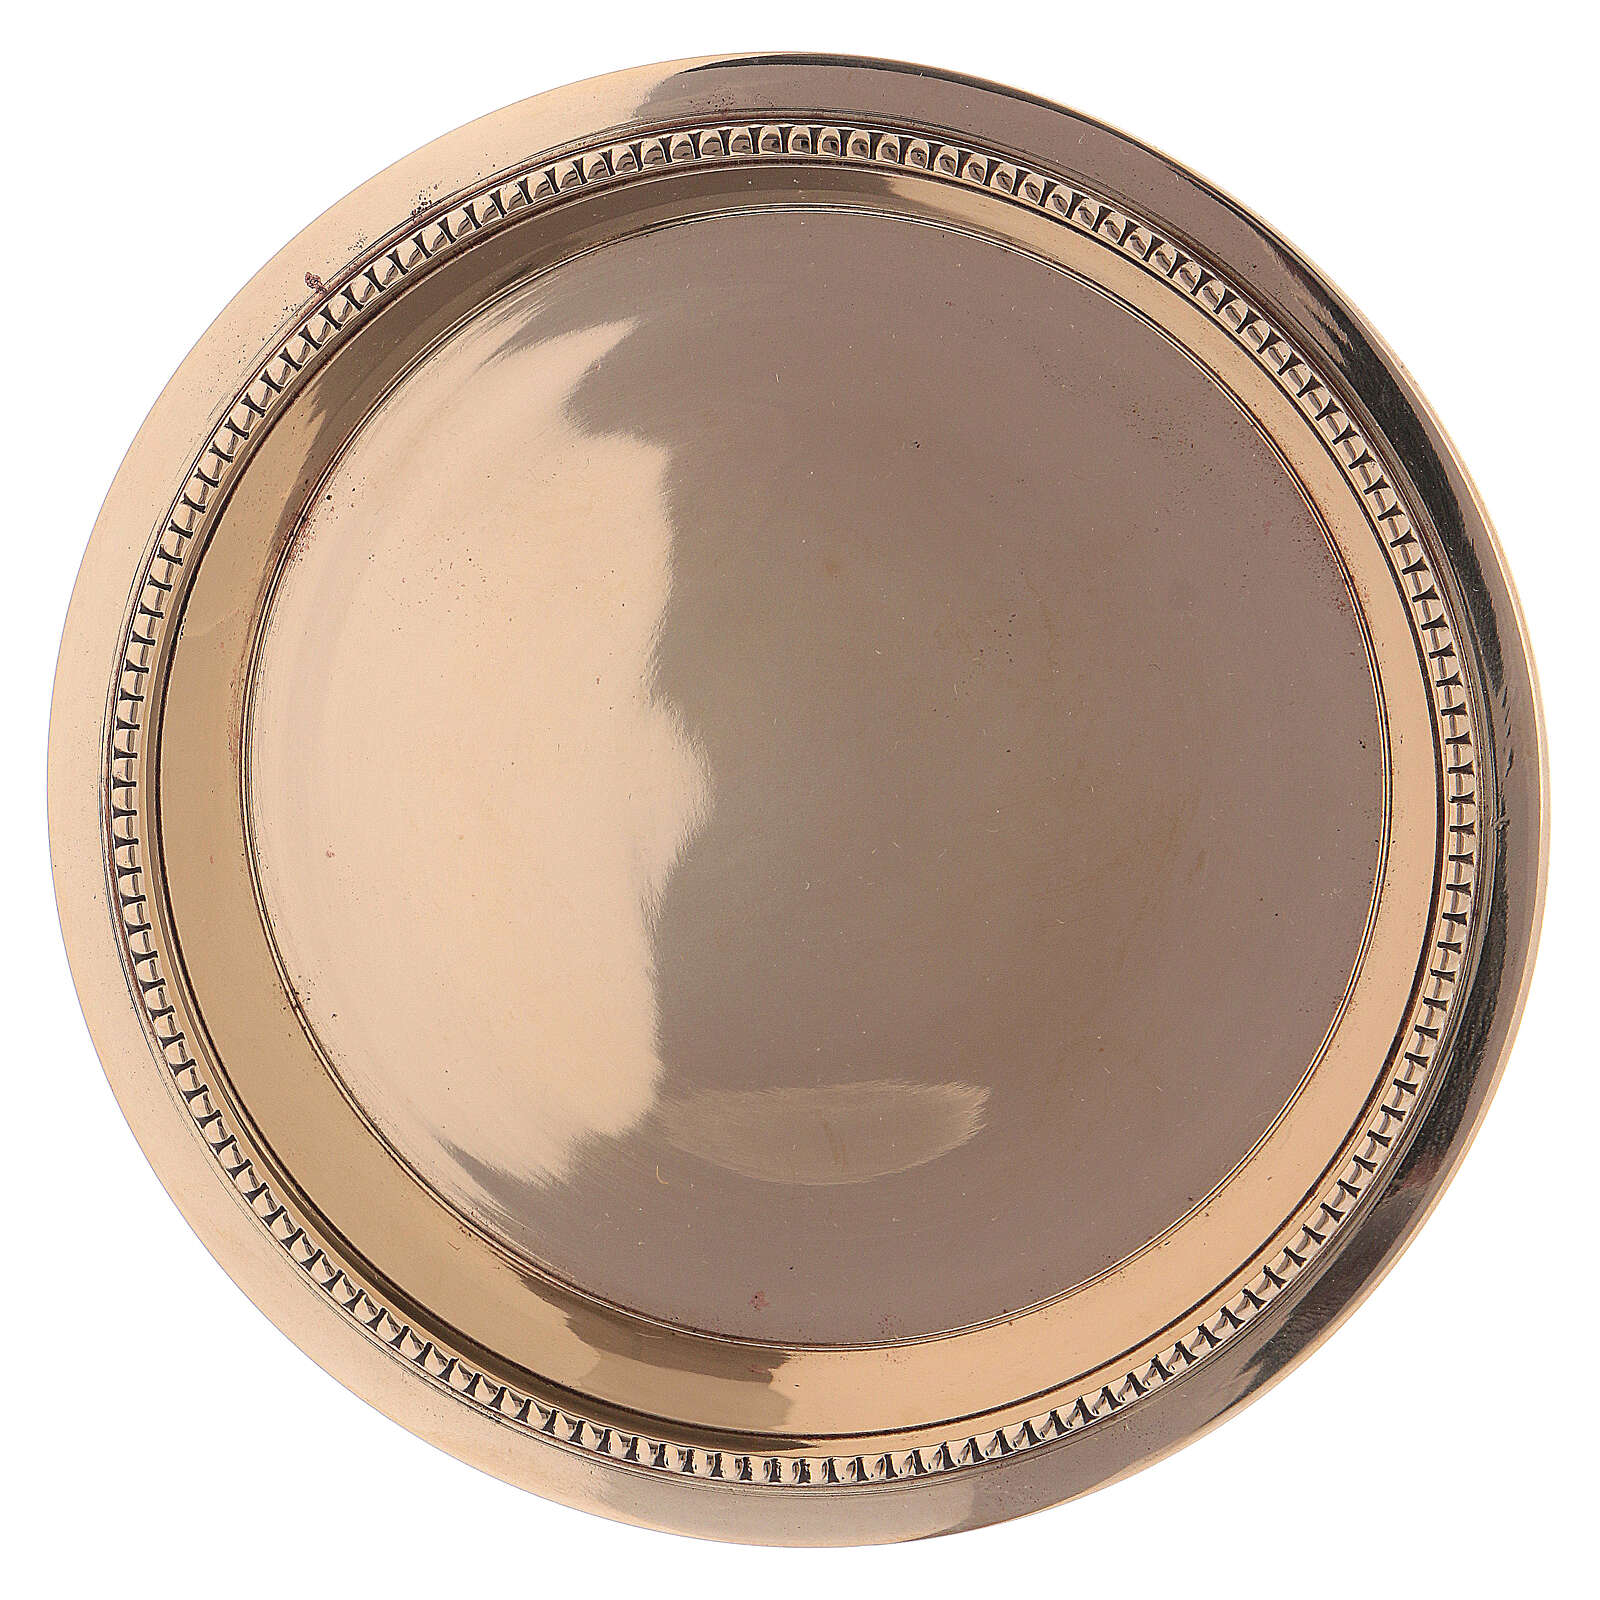 Saucer made of shiny golden brass 11 cm 3